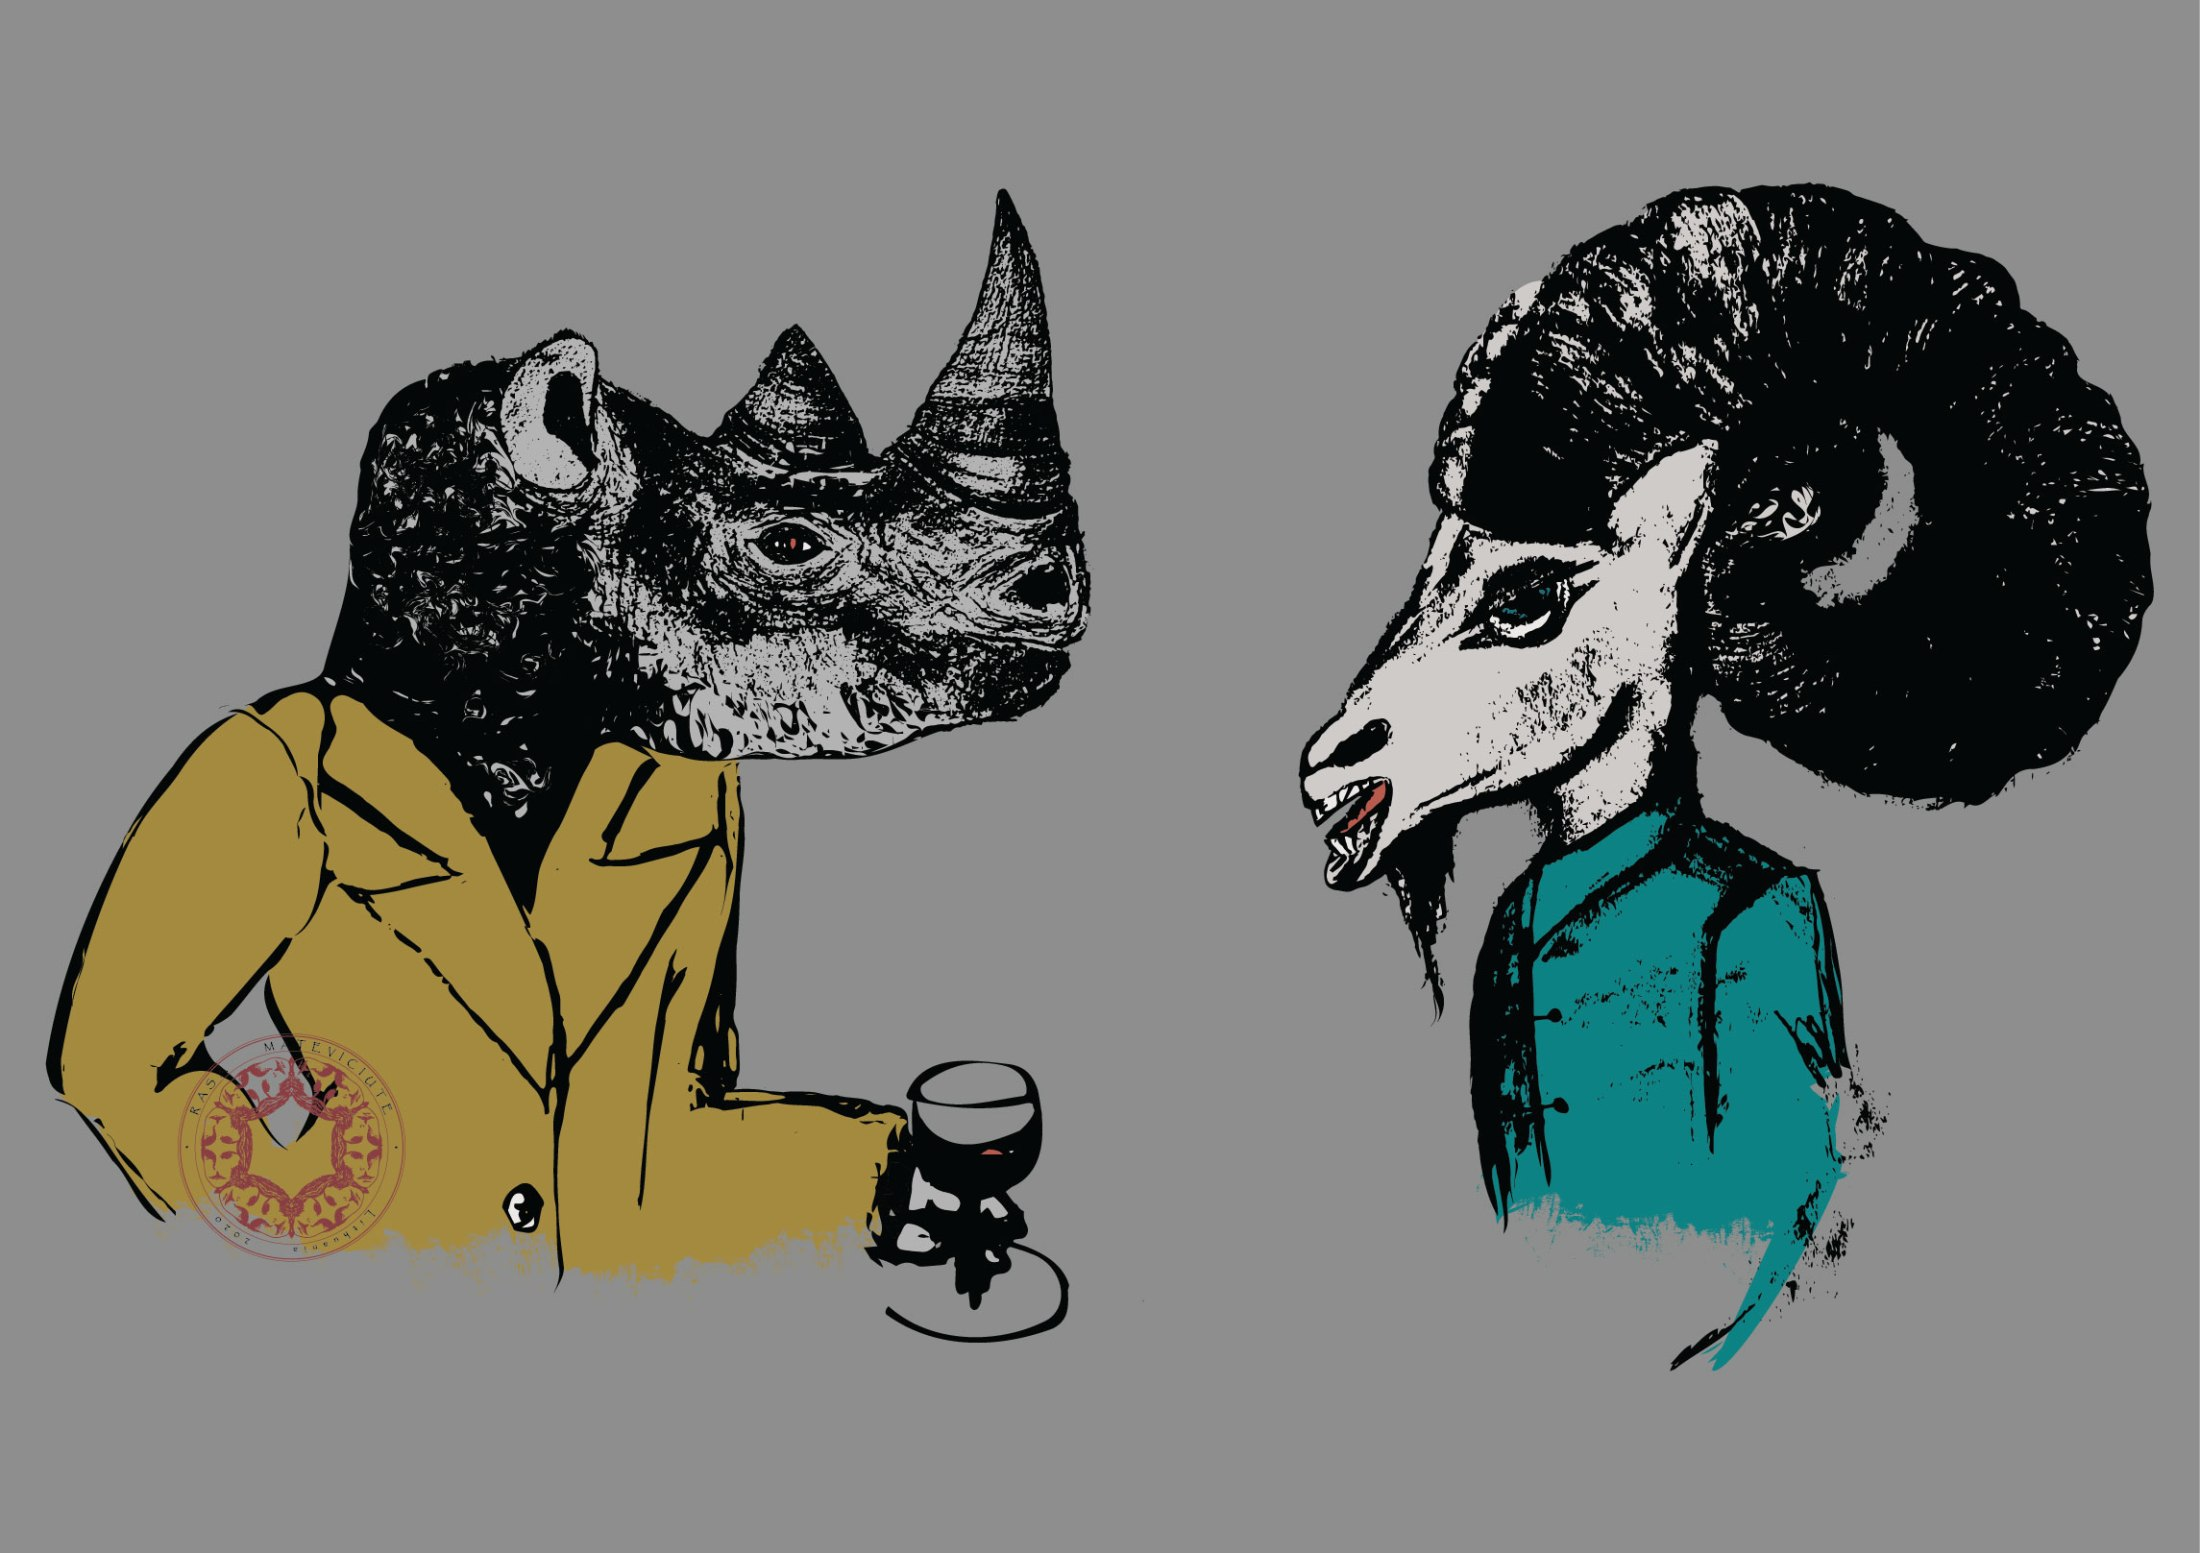 Illustration of rhino man and goat man business meeting, wearing suits and glass of wine, with massive horns. Rasa Mateviciute.